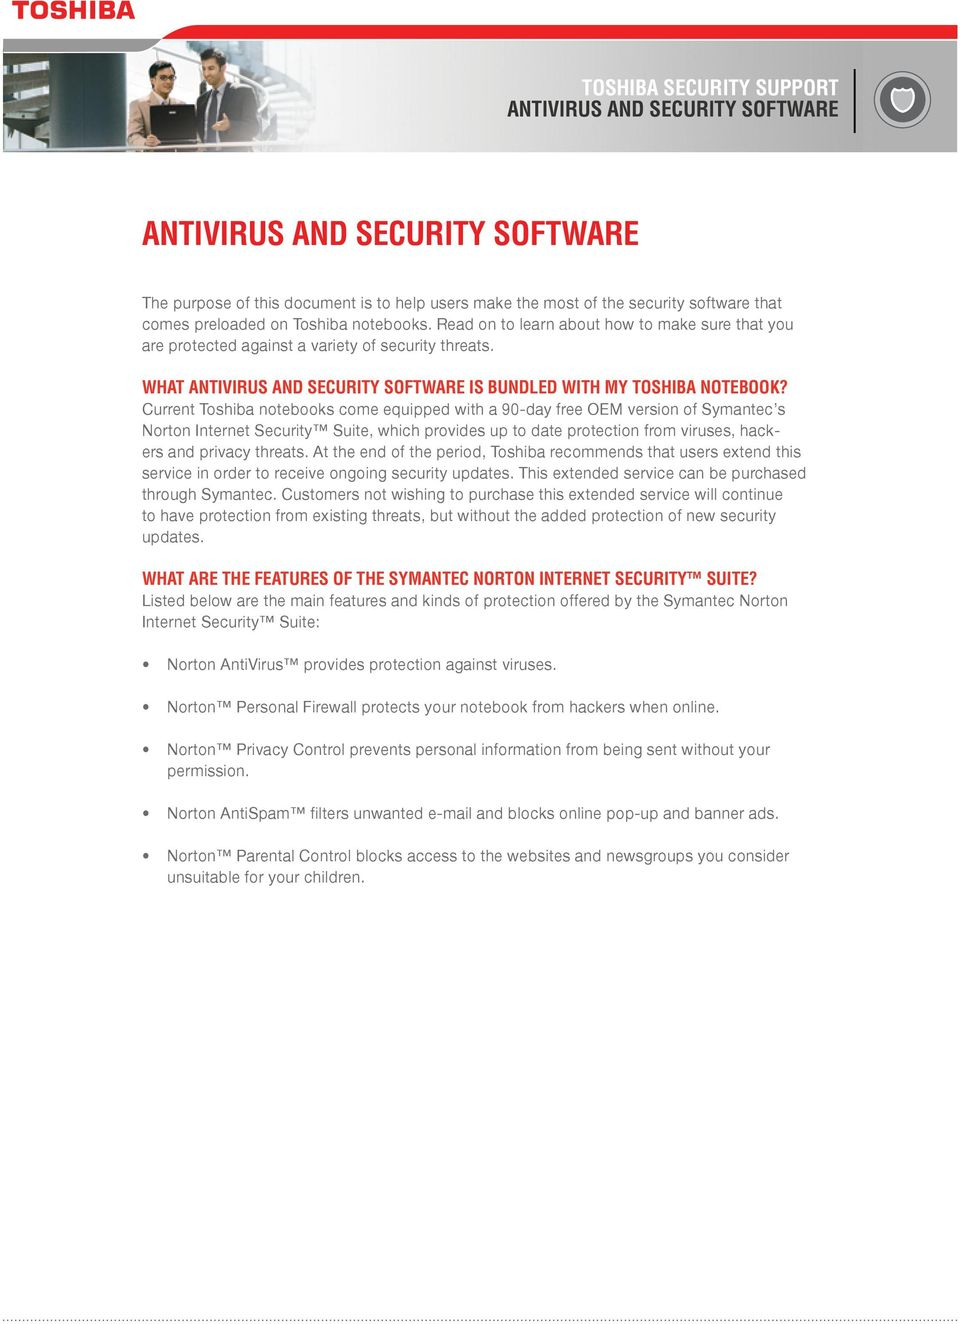 Current Toshiba notebooks come equipped with a 90-day free OEM version of Symantec s Norton Internet Security Suite, which provides up to date protection from viruses, hackers and privacy threats.